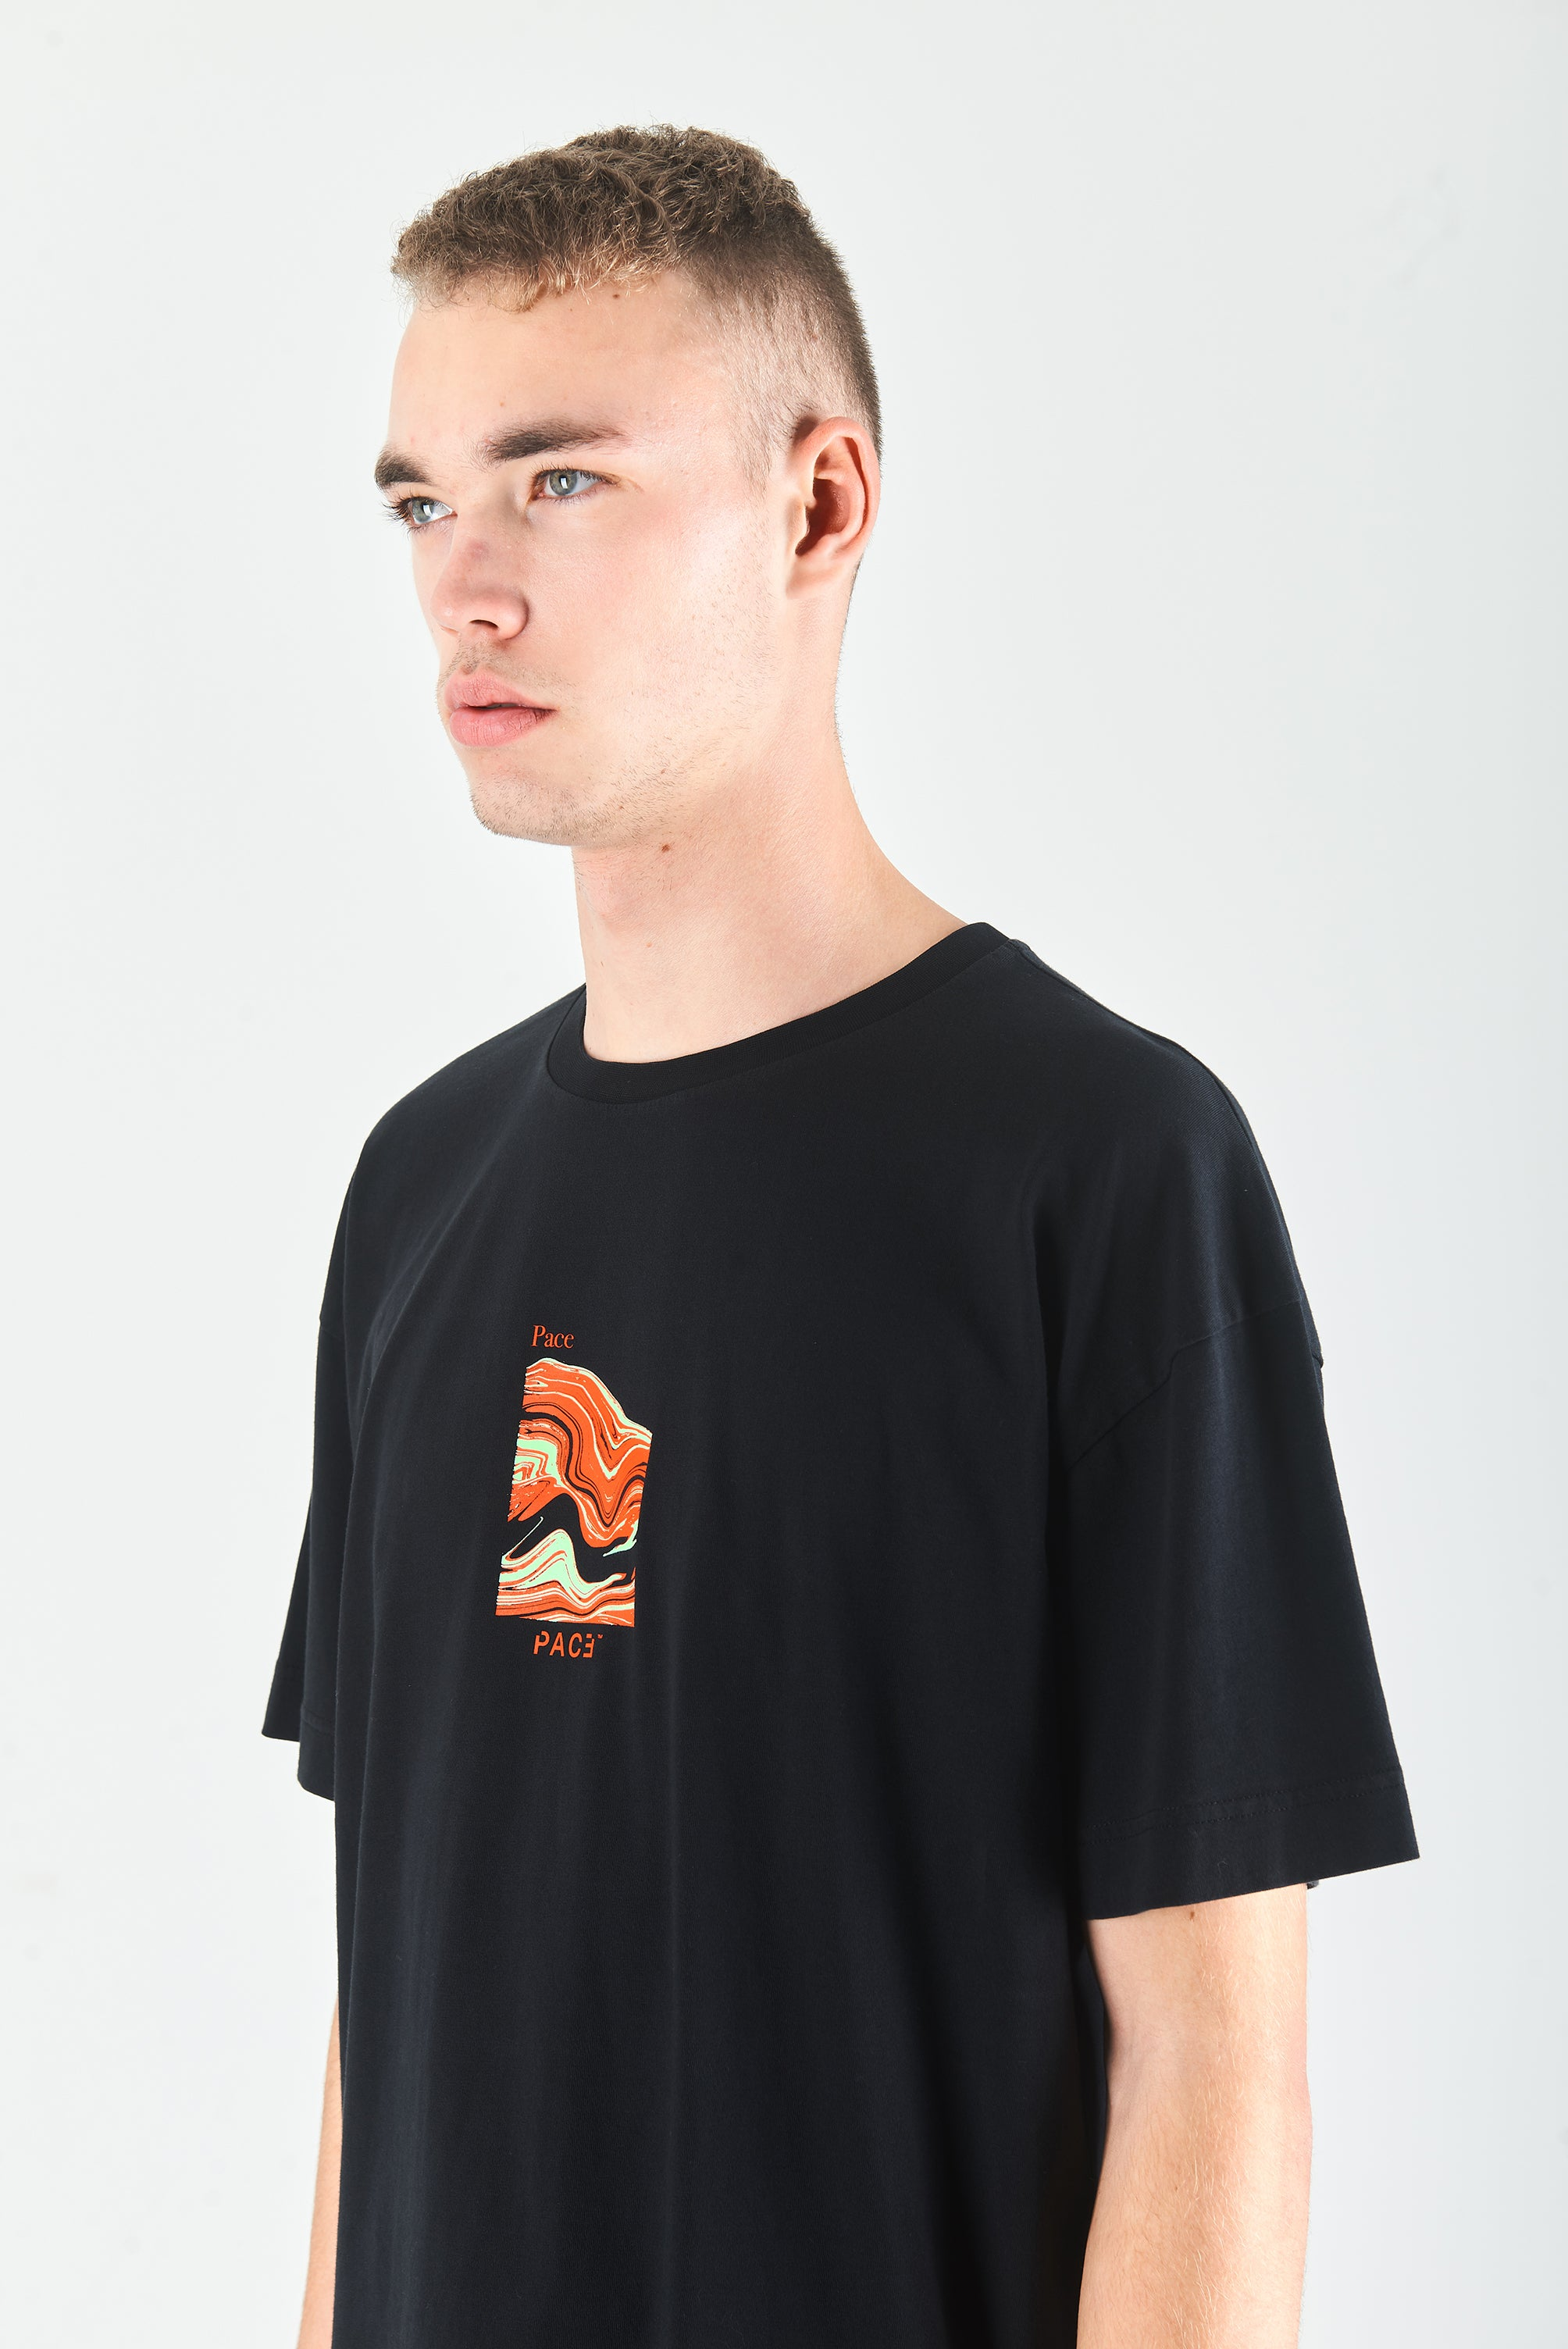 MRBSH1 T-SHIRT BLACK